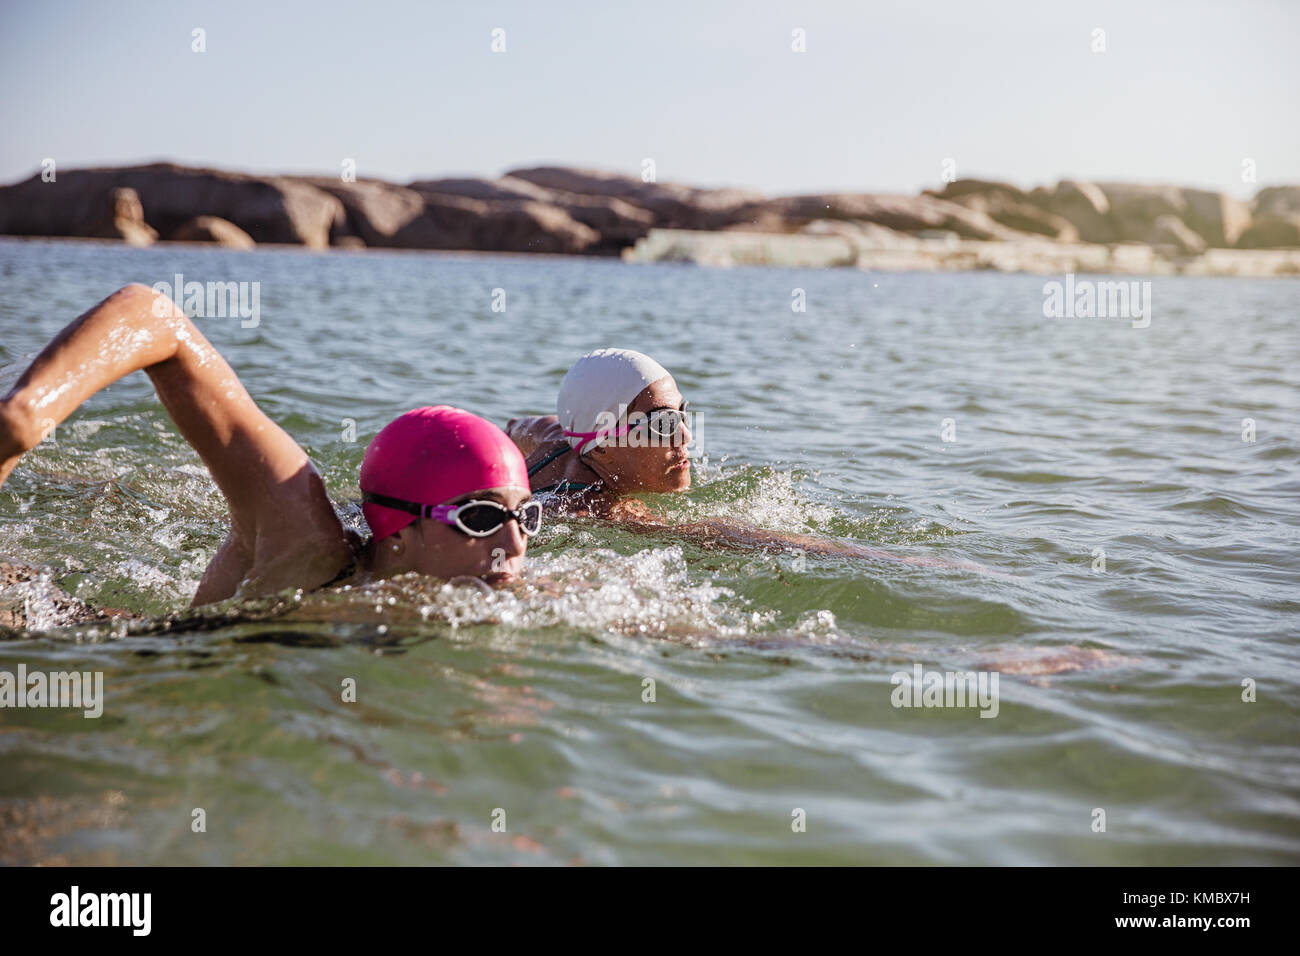 Determined, focused female open water swimmers swimming in sunny ocean - Stock Image